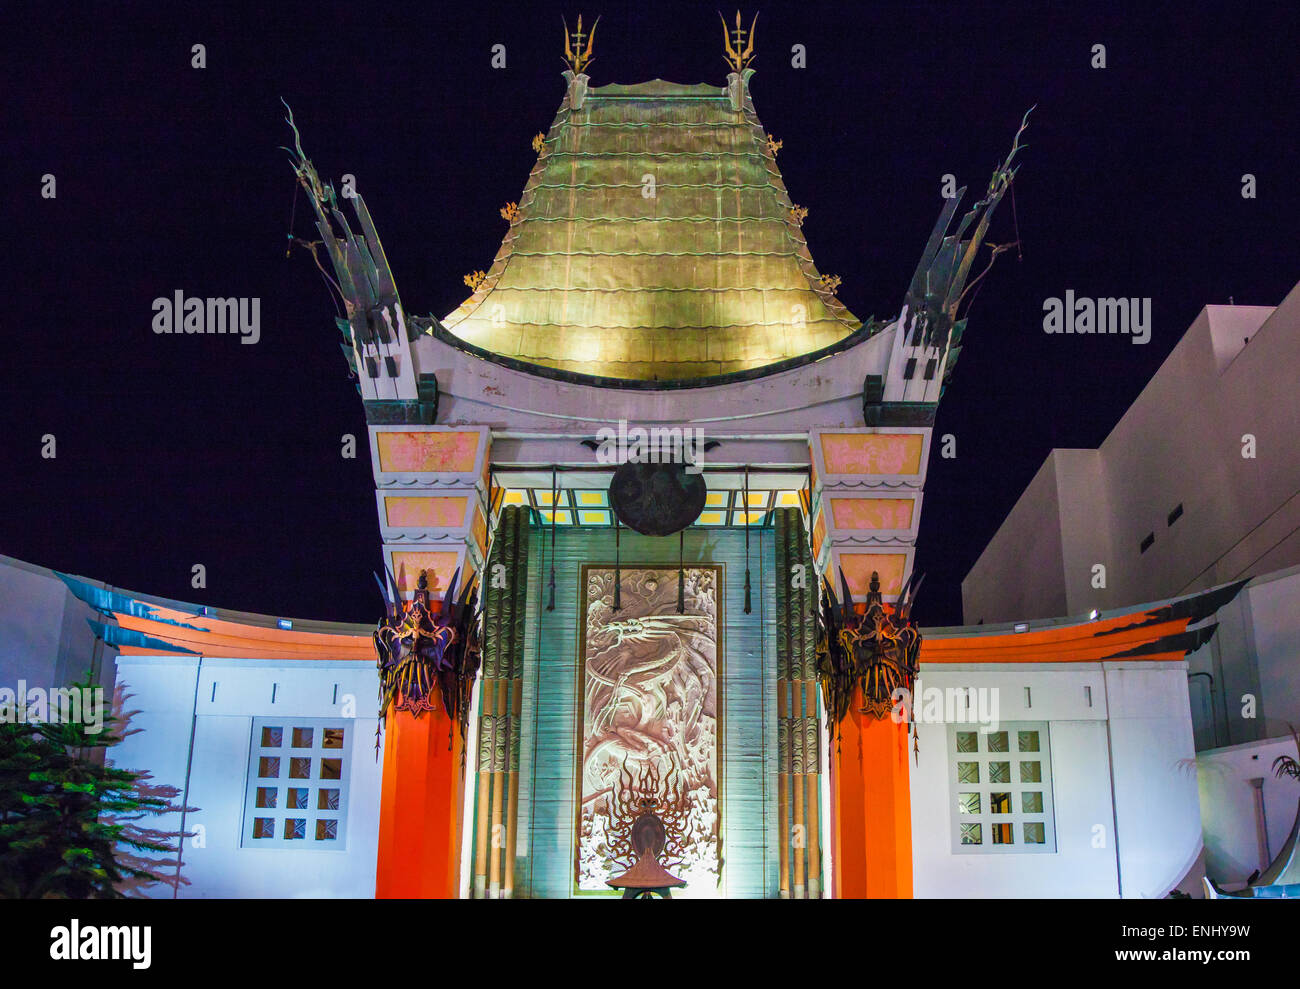 U.S.A., California, Los Angeles, Hollywood, the Grauman's Chinese Theatre - Stock Image